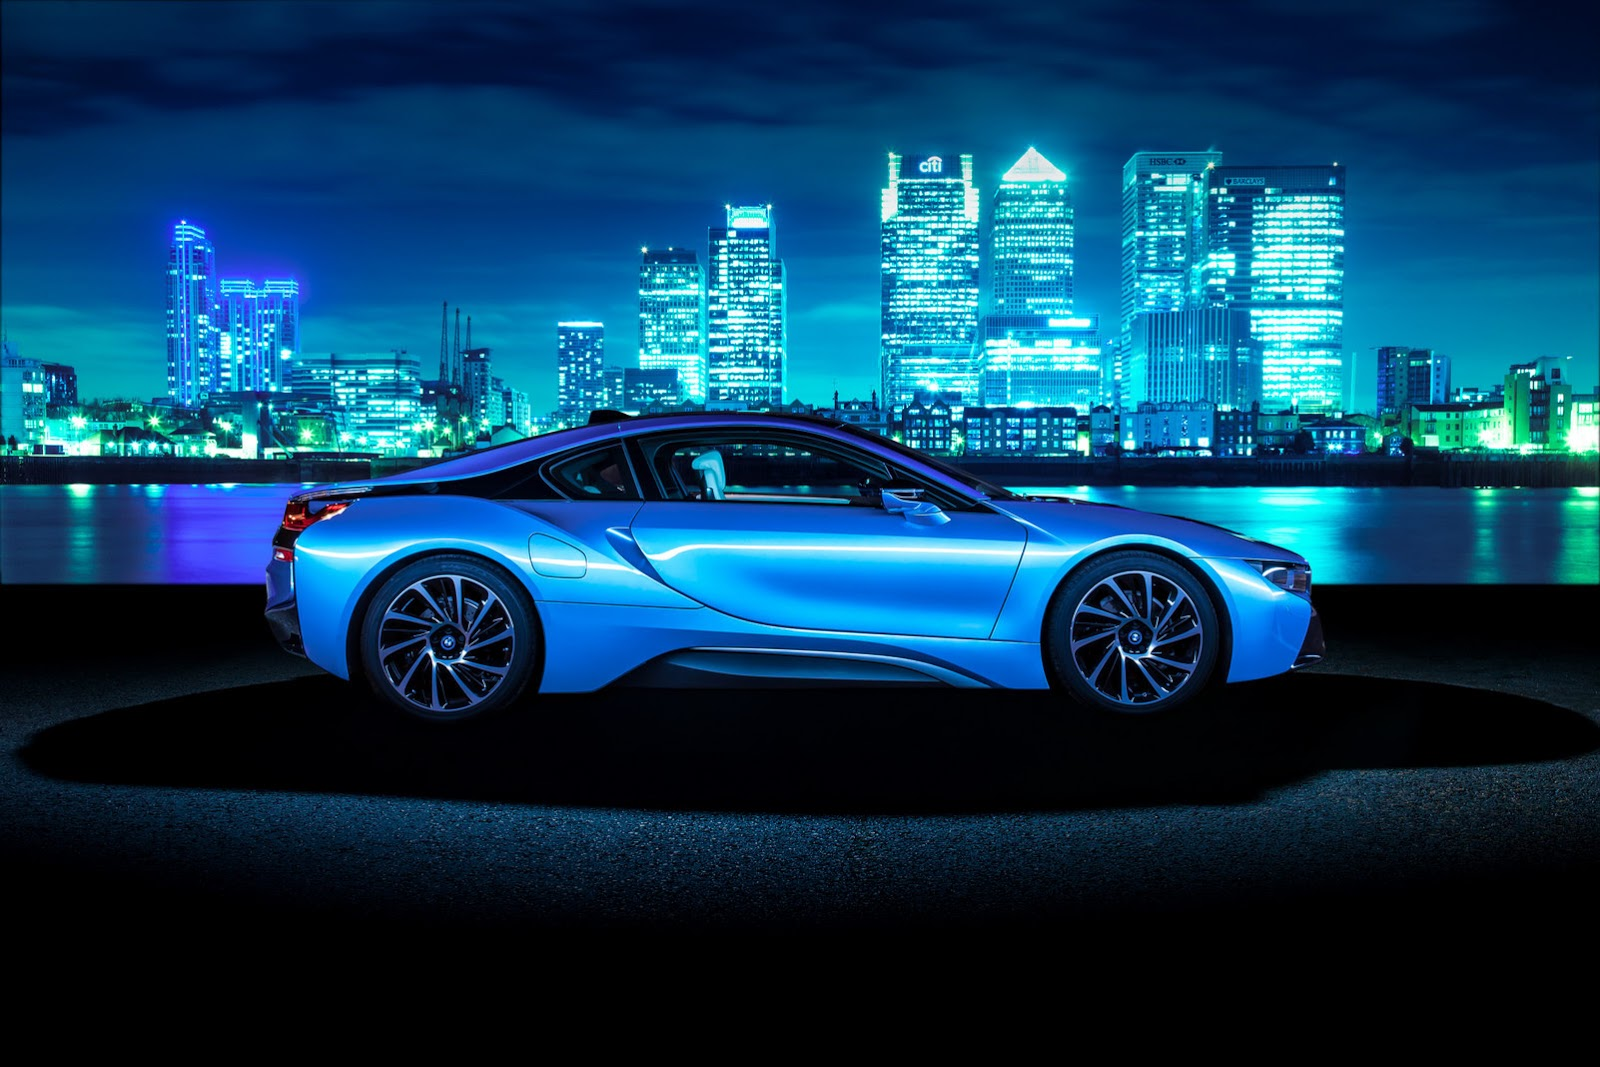 2015 Bmw I8 Pricing And Options How Expensive Can It Get